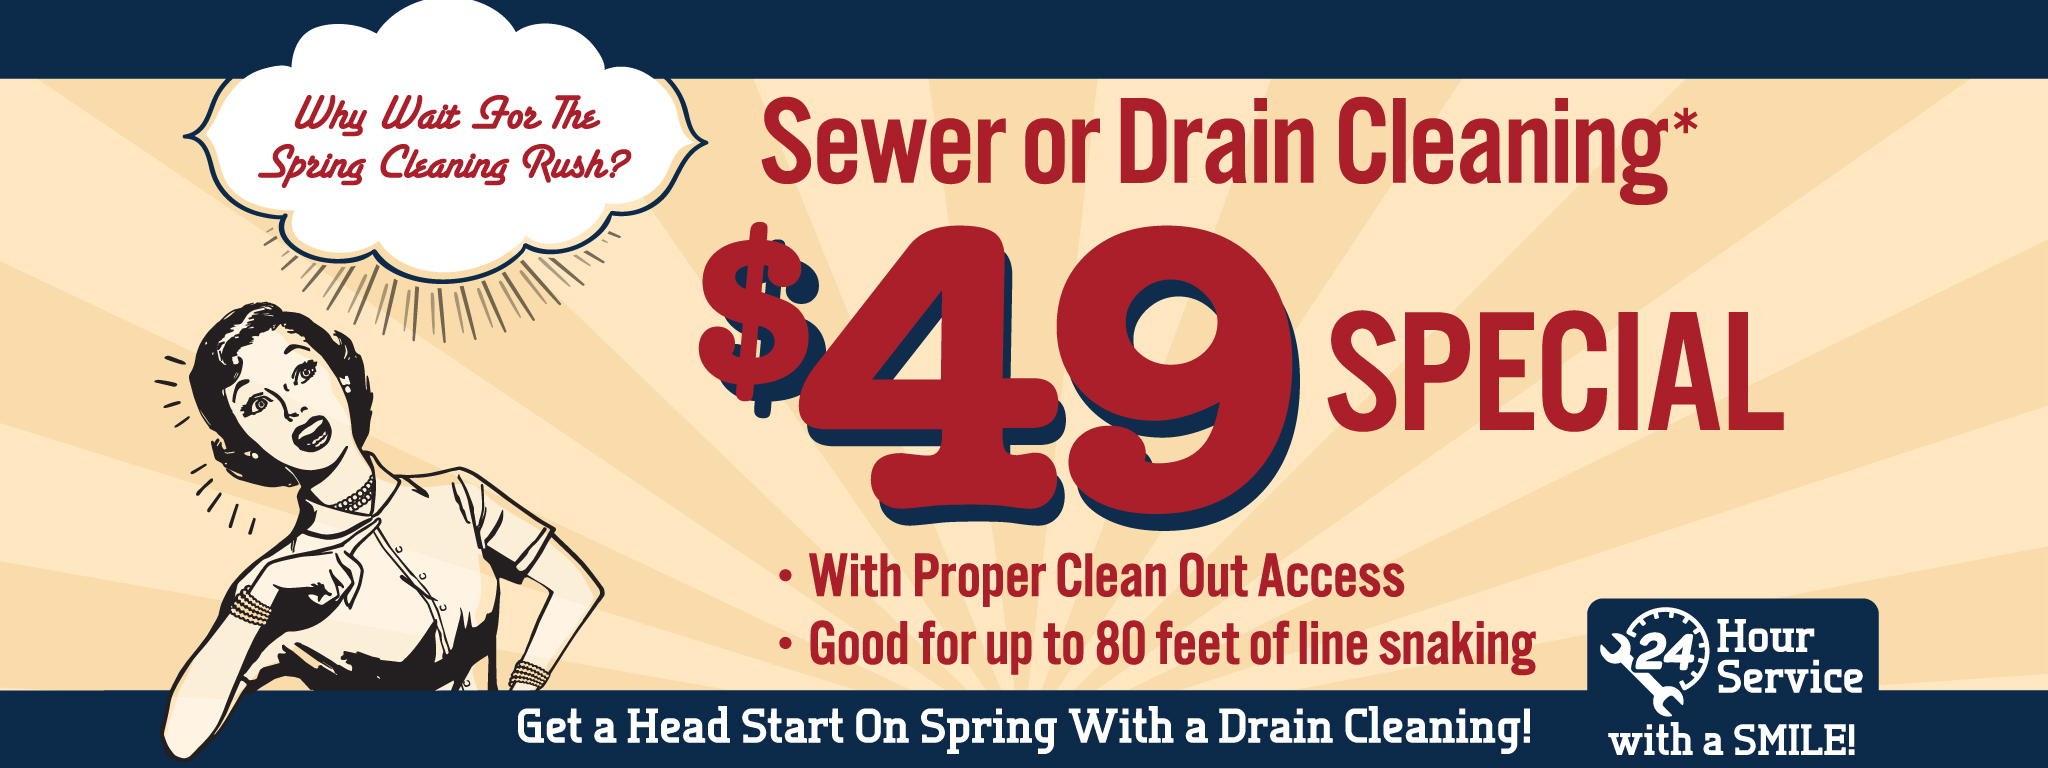 Sewer Drain Cleaning Special